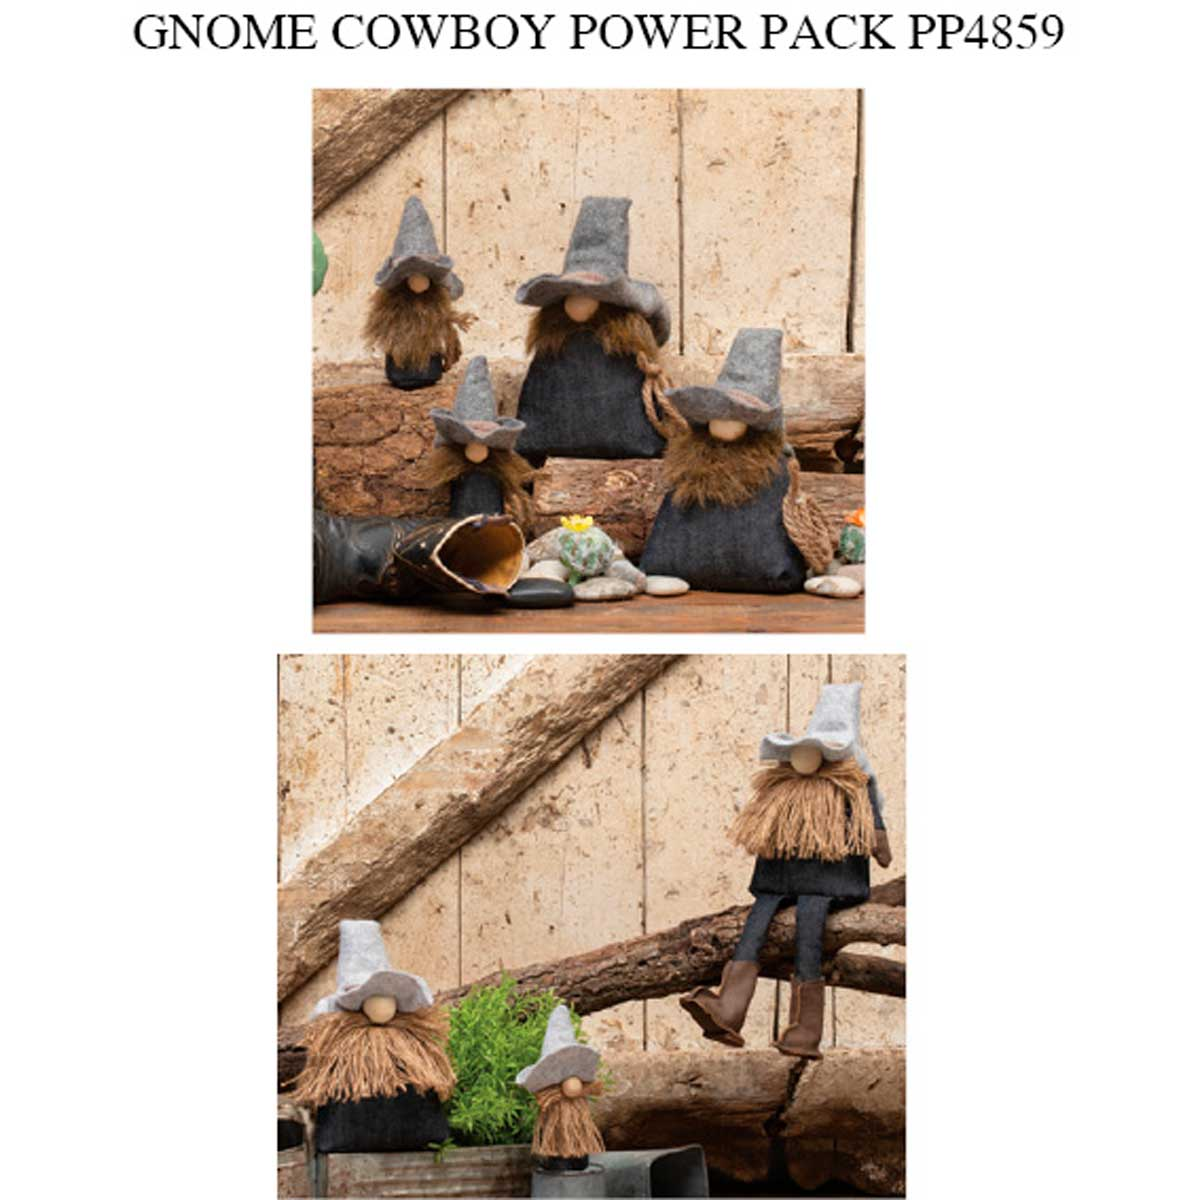 Cowboy Gnome Power Pack 30 units PP4859